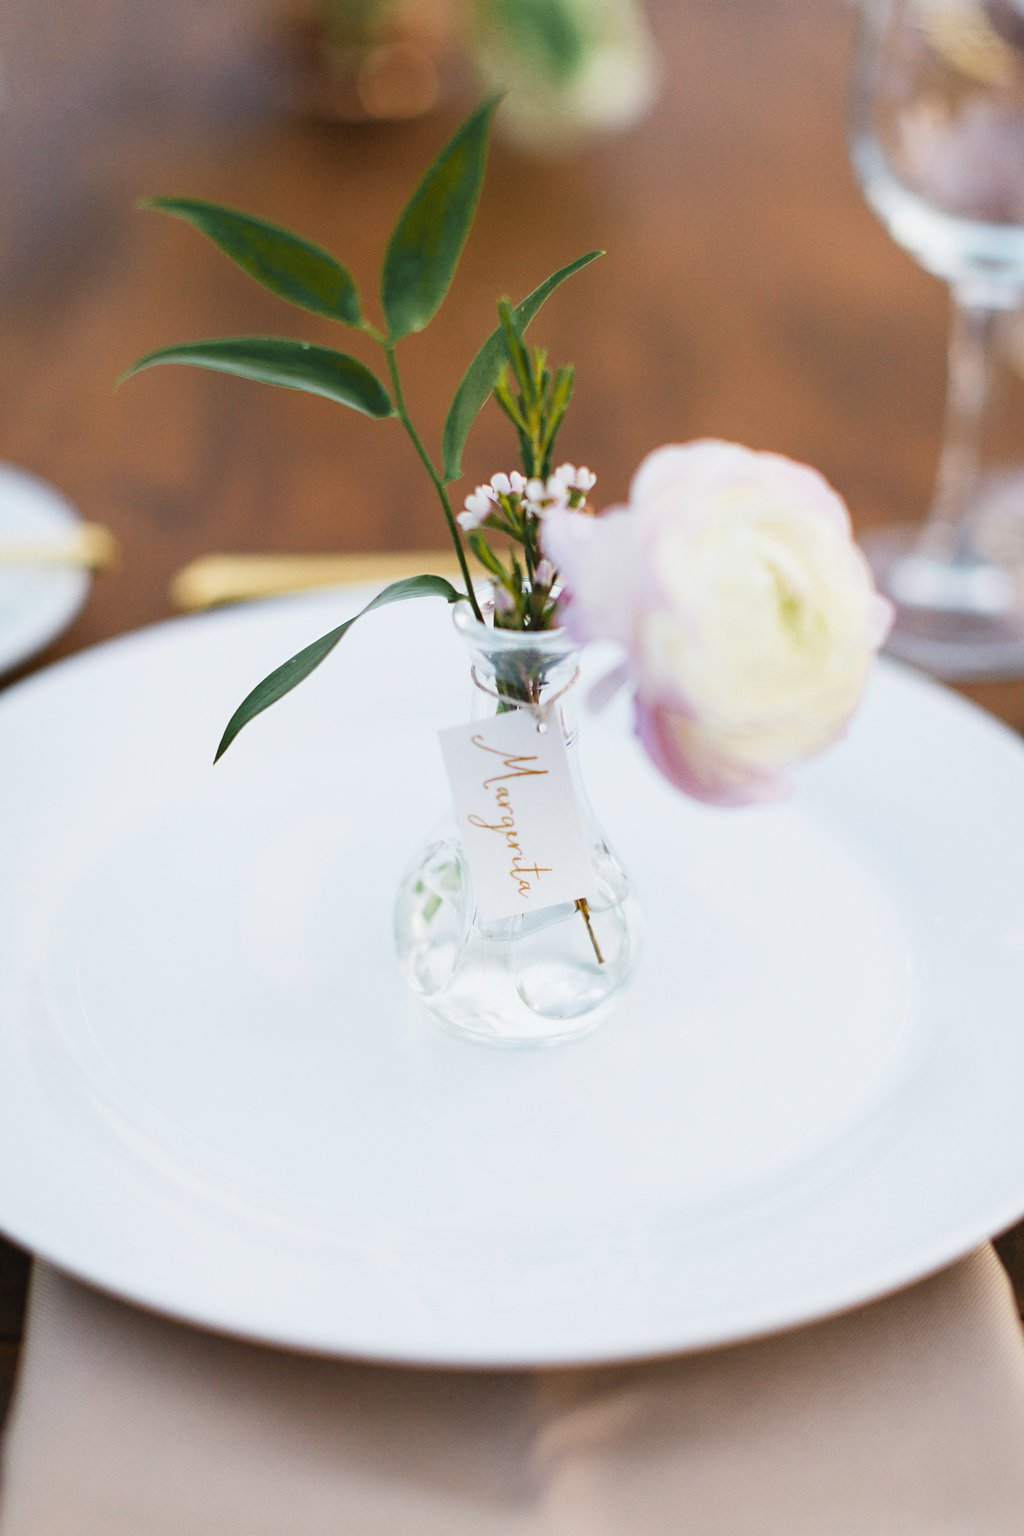 statement place card display